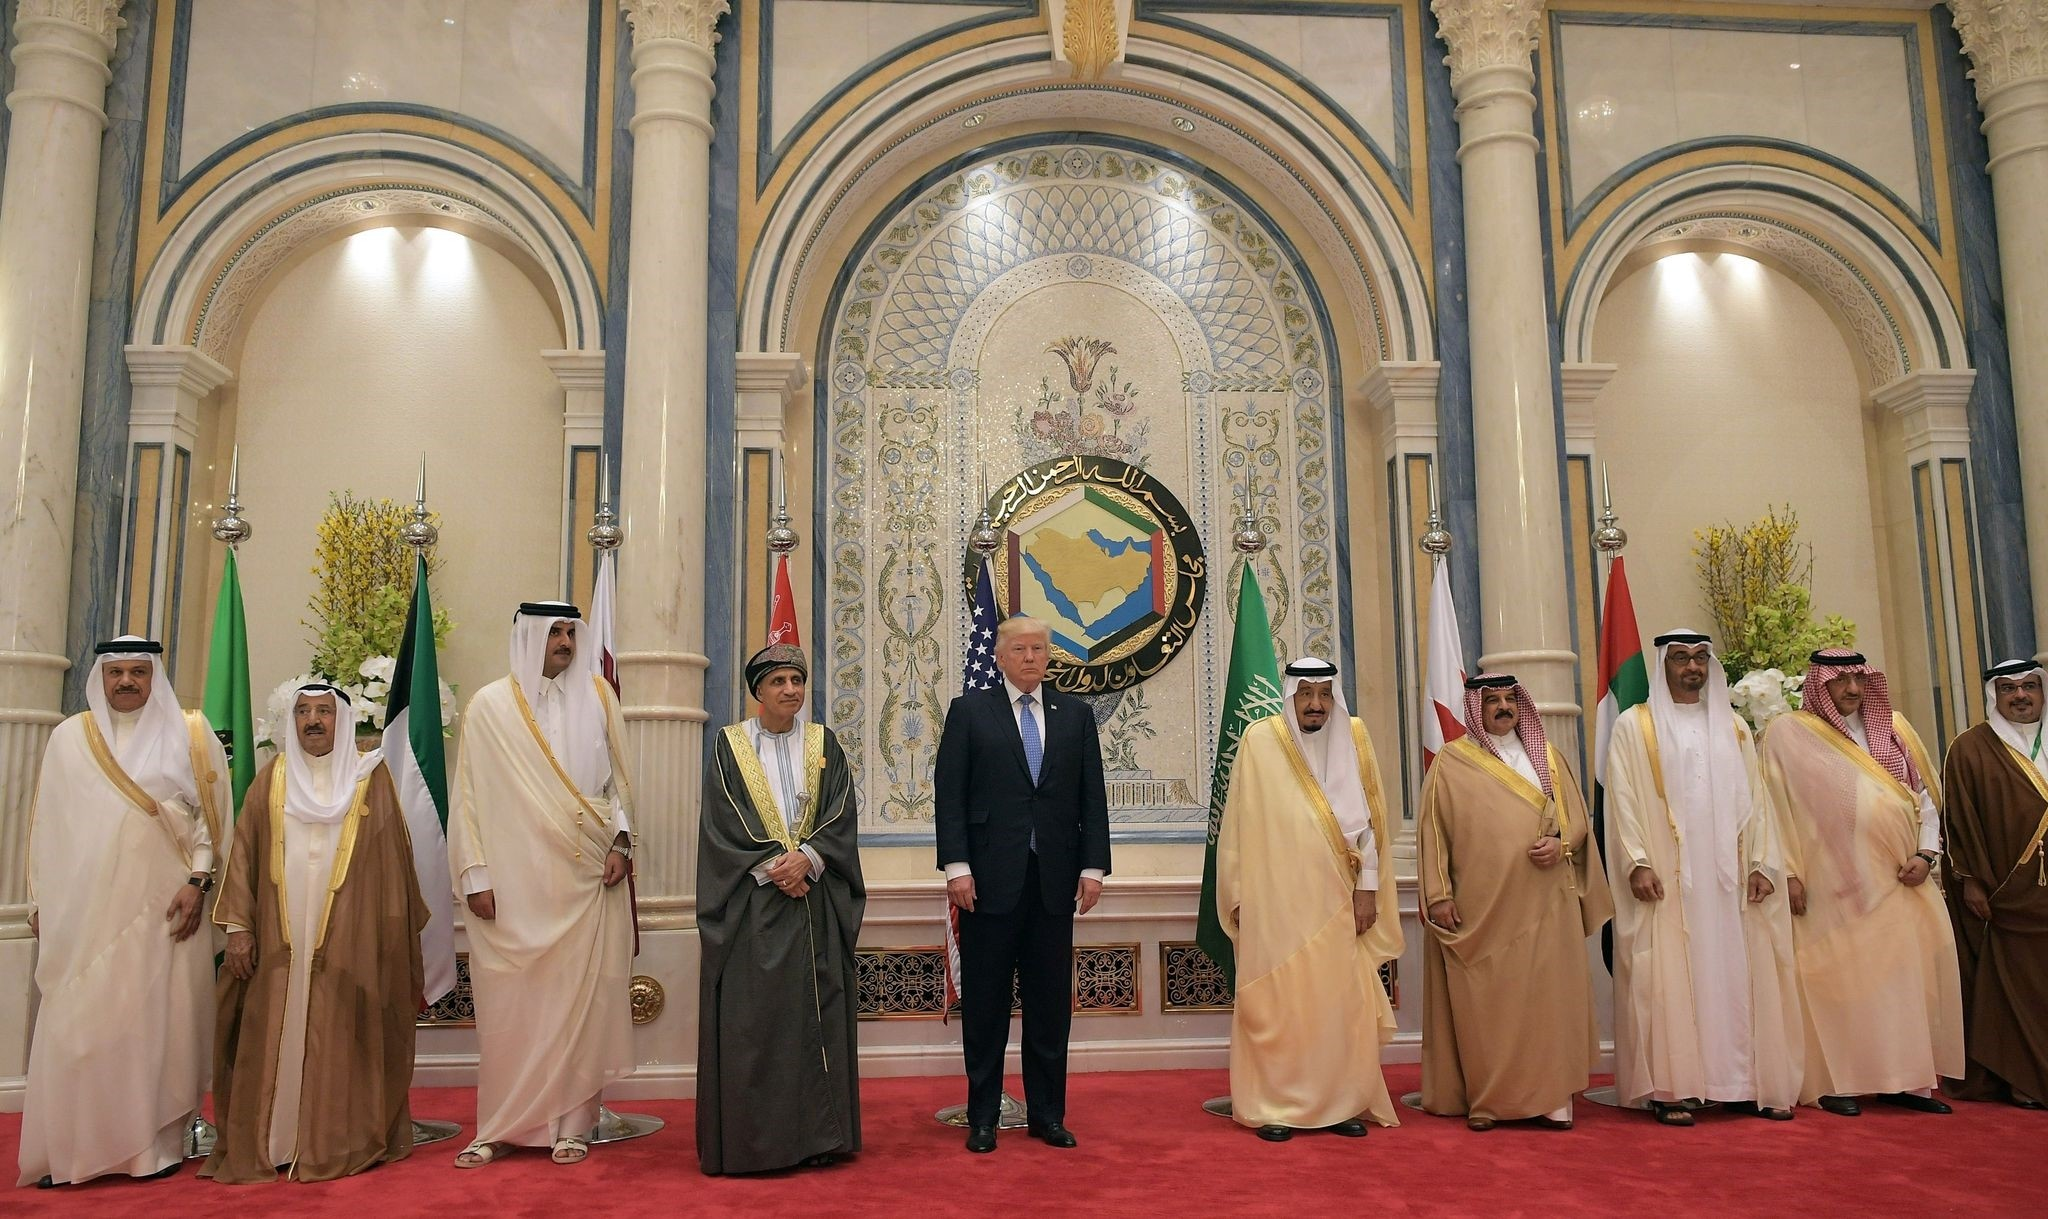 US President Donald Trump (C) and Saudi's King Salman bin Abdulaziz al-Saud (C-R) pose for a picture with leaders of the Gulf Cooperation Council in Riyadh. (AFP Photo)